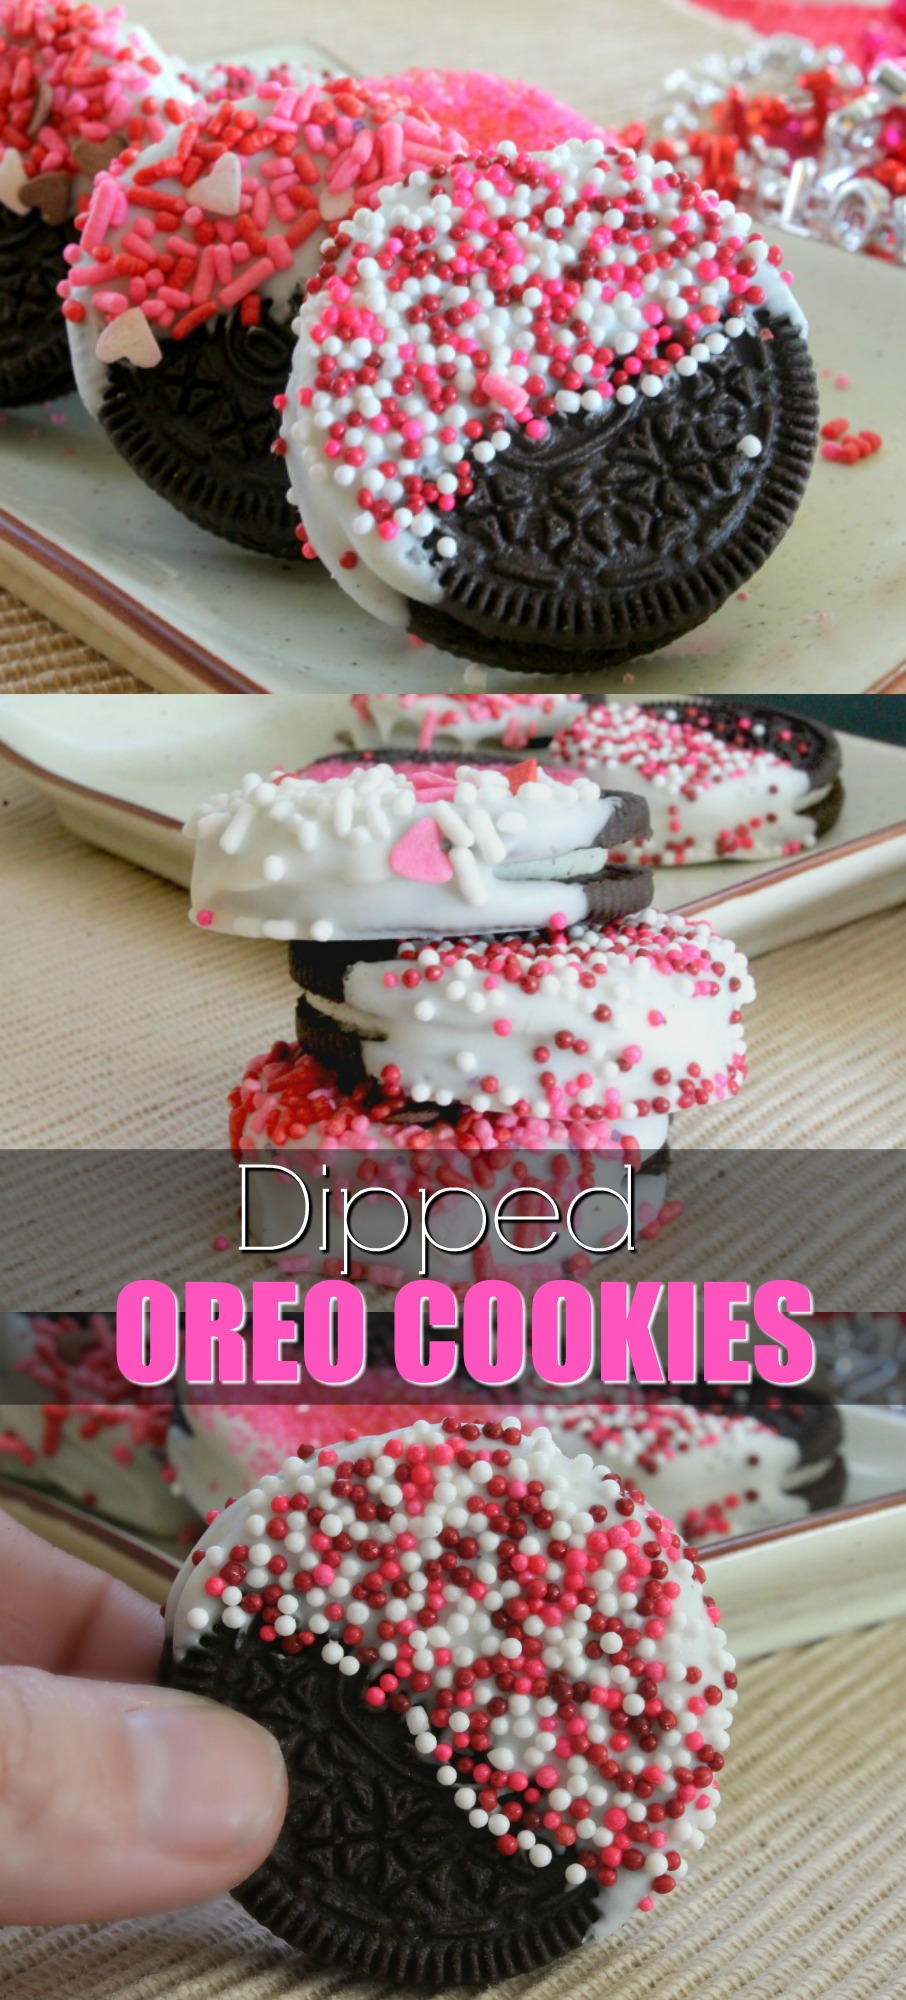 Chocolate Dipped Oreo Cookies Recipe Makes the perfect Valentines cookie. Valentines Day Cookie Ideas.